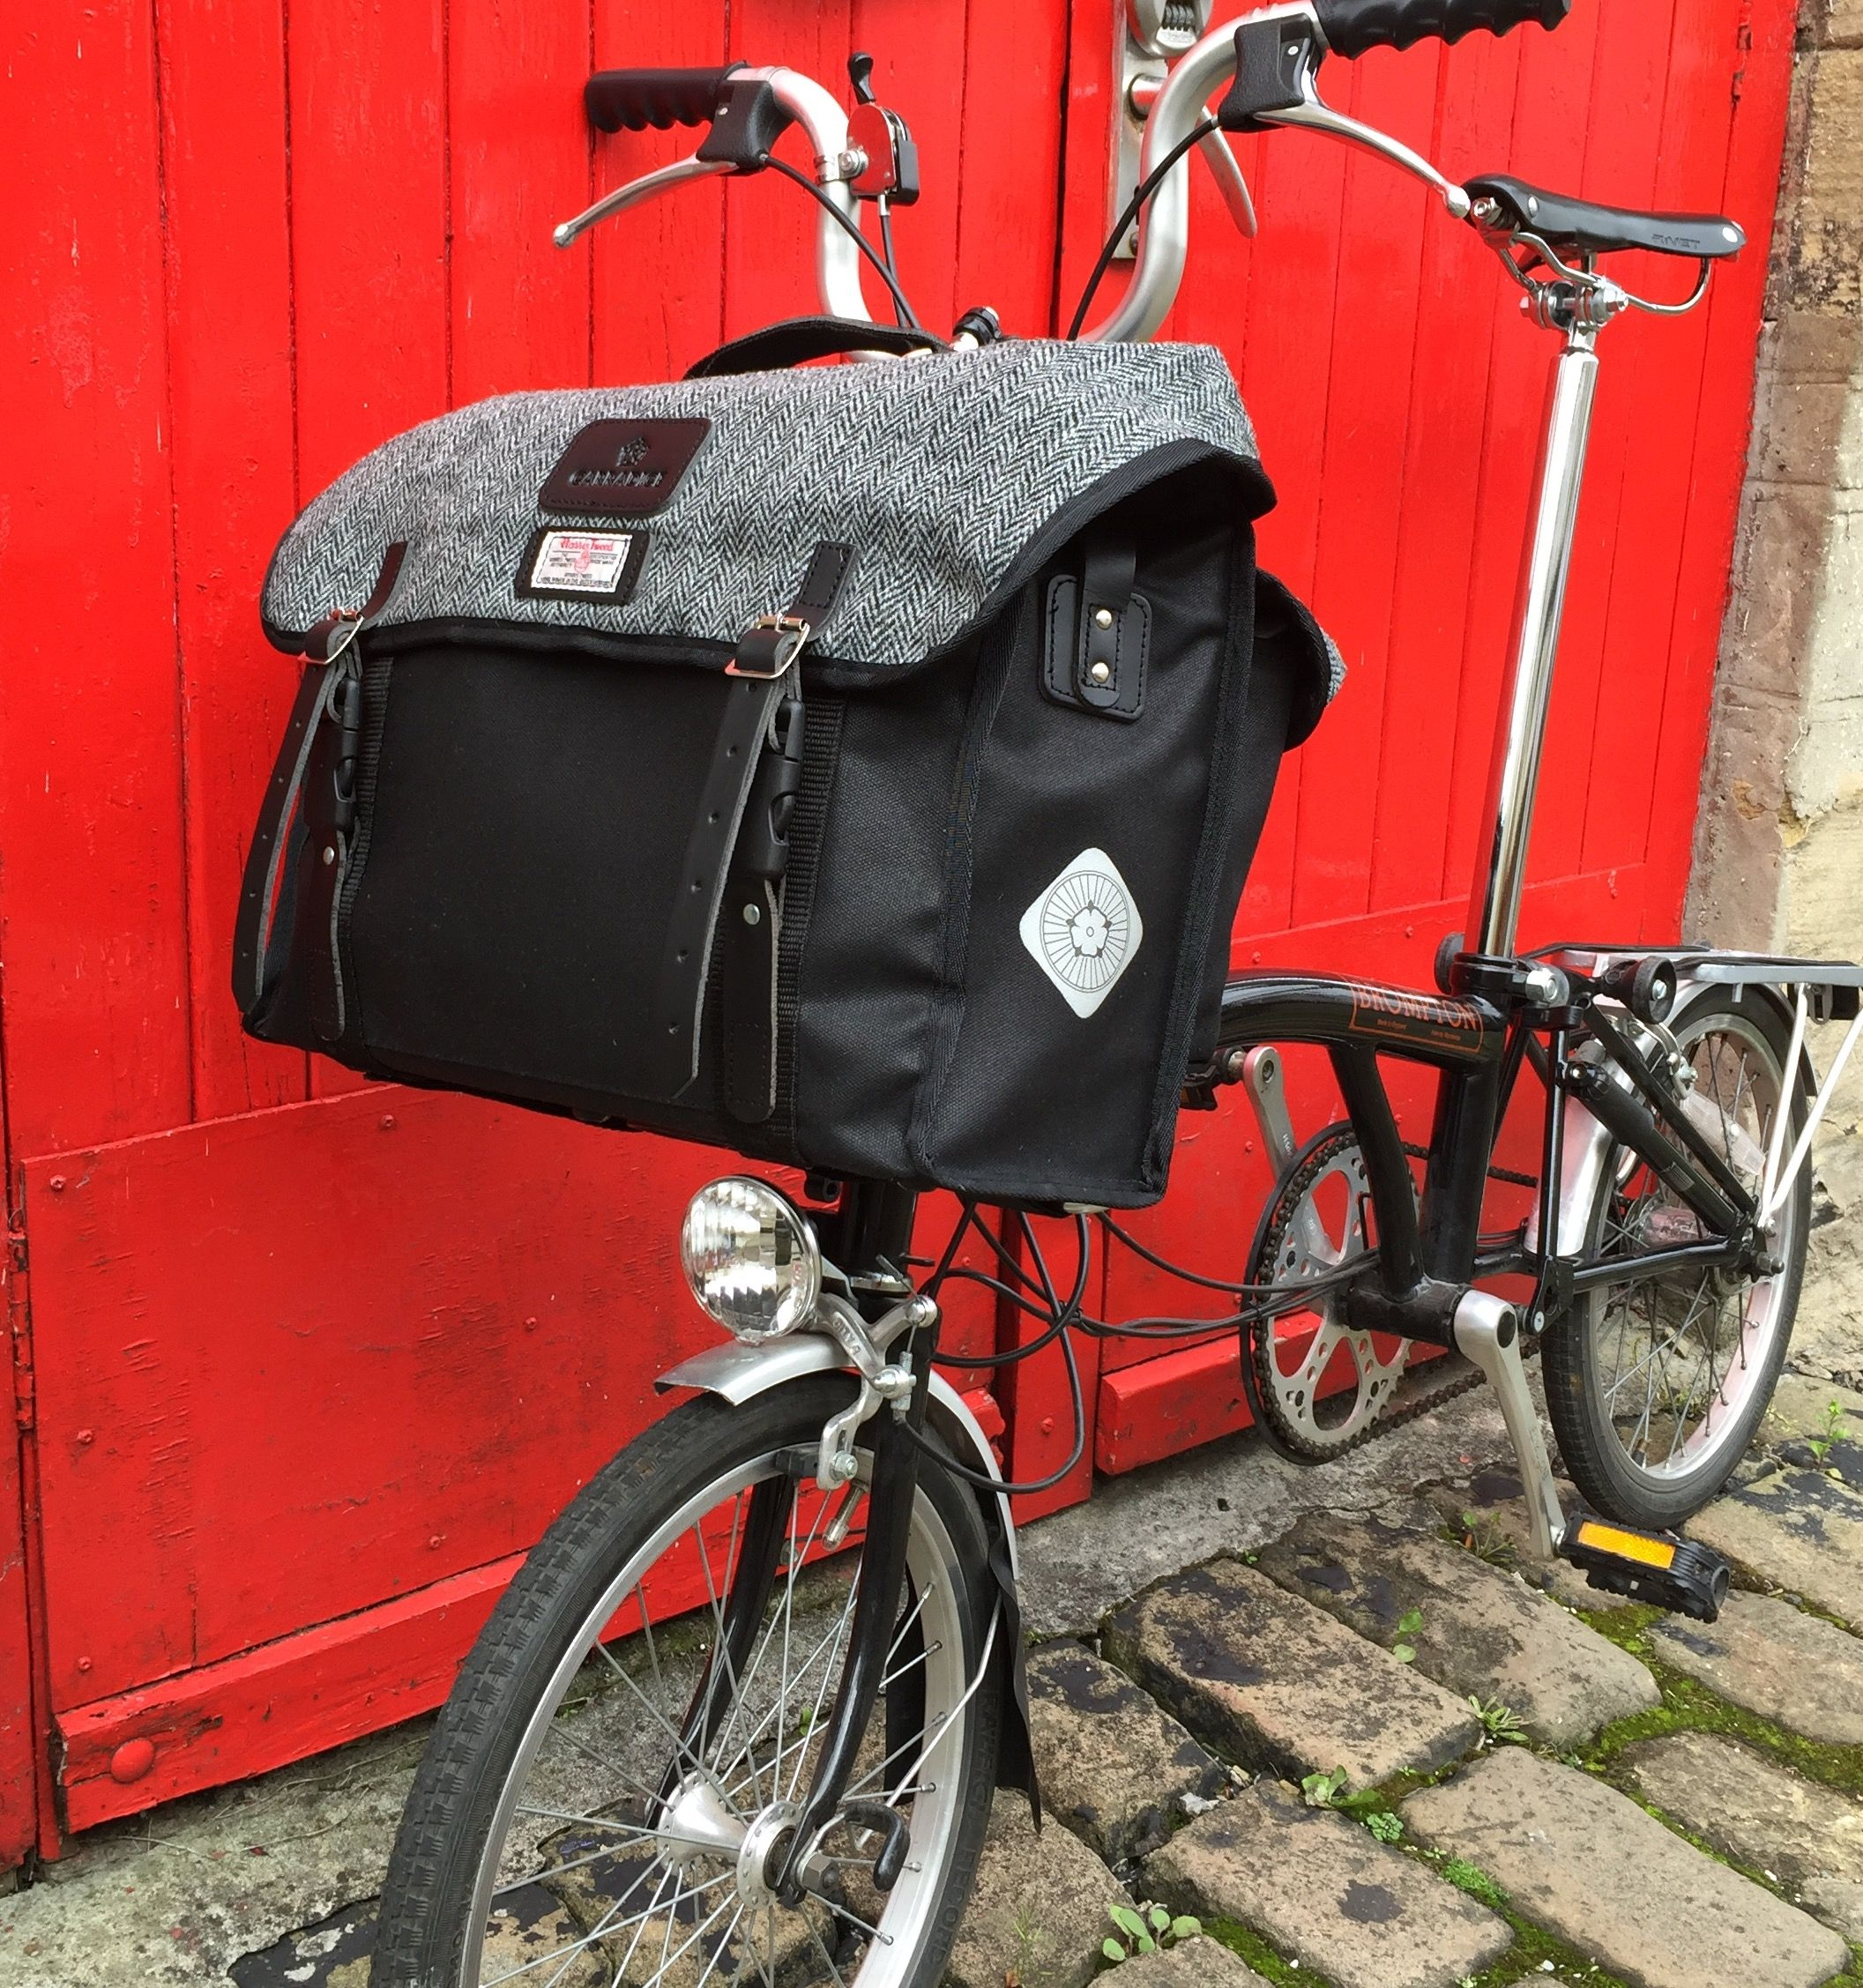 The City Folder M Bag Is A Perfect Bag For The Discerning Brompton Folding Bike User Its Large Capacity And Great L In 2020 Brompton Bicycle Brompton Bag Harris Tweed